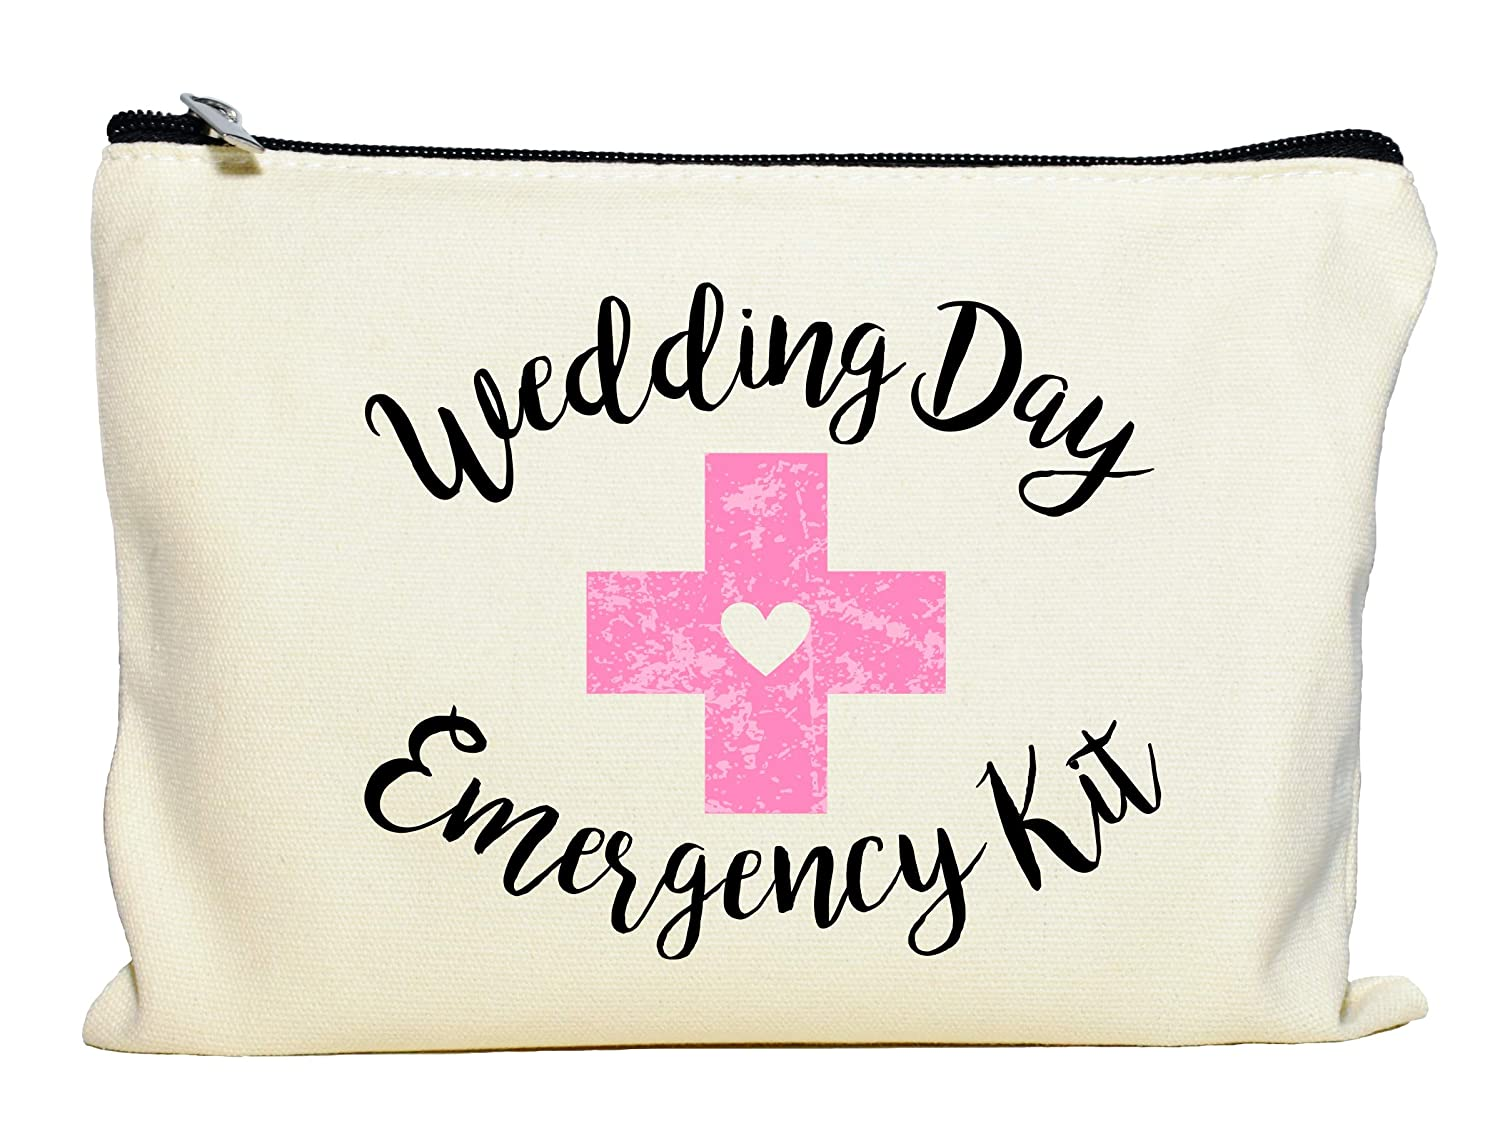 Amazon.com: Moonwake Designs Kit de emergencia para boda ...